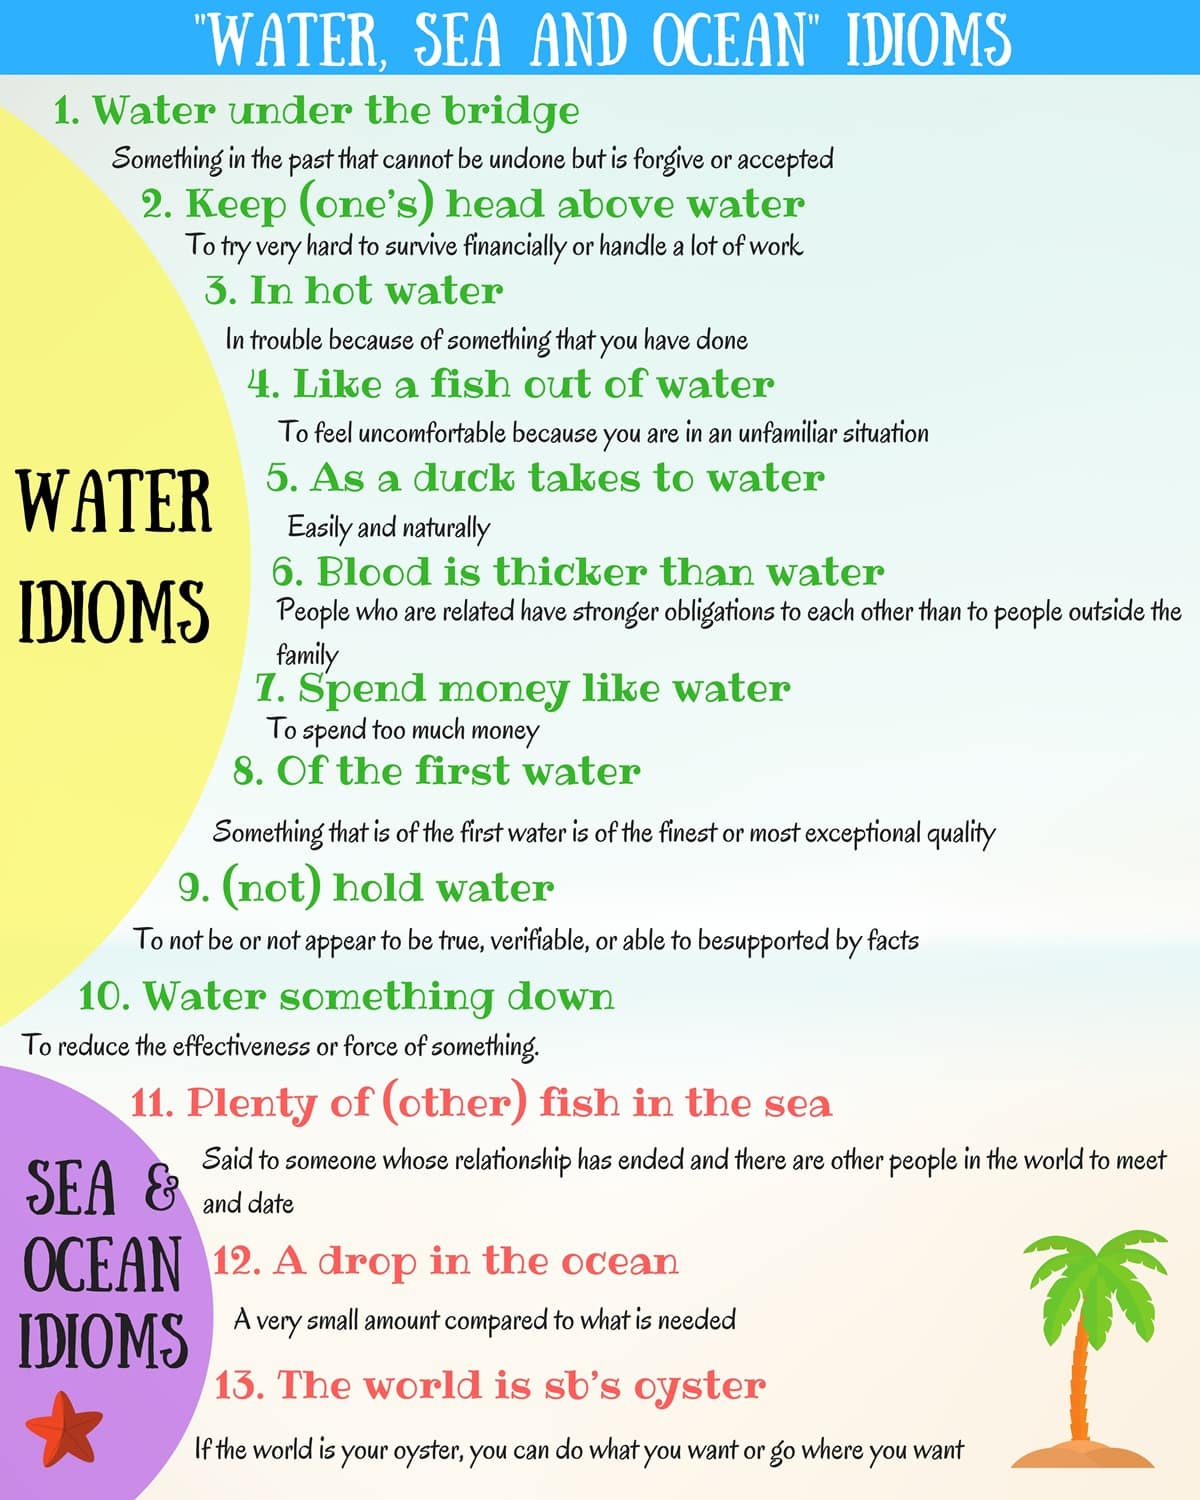 WATER, SEA and OCEAN Idioms in English